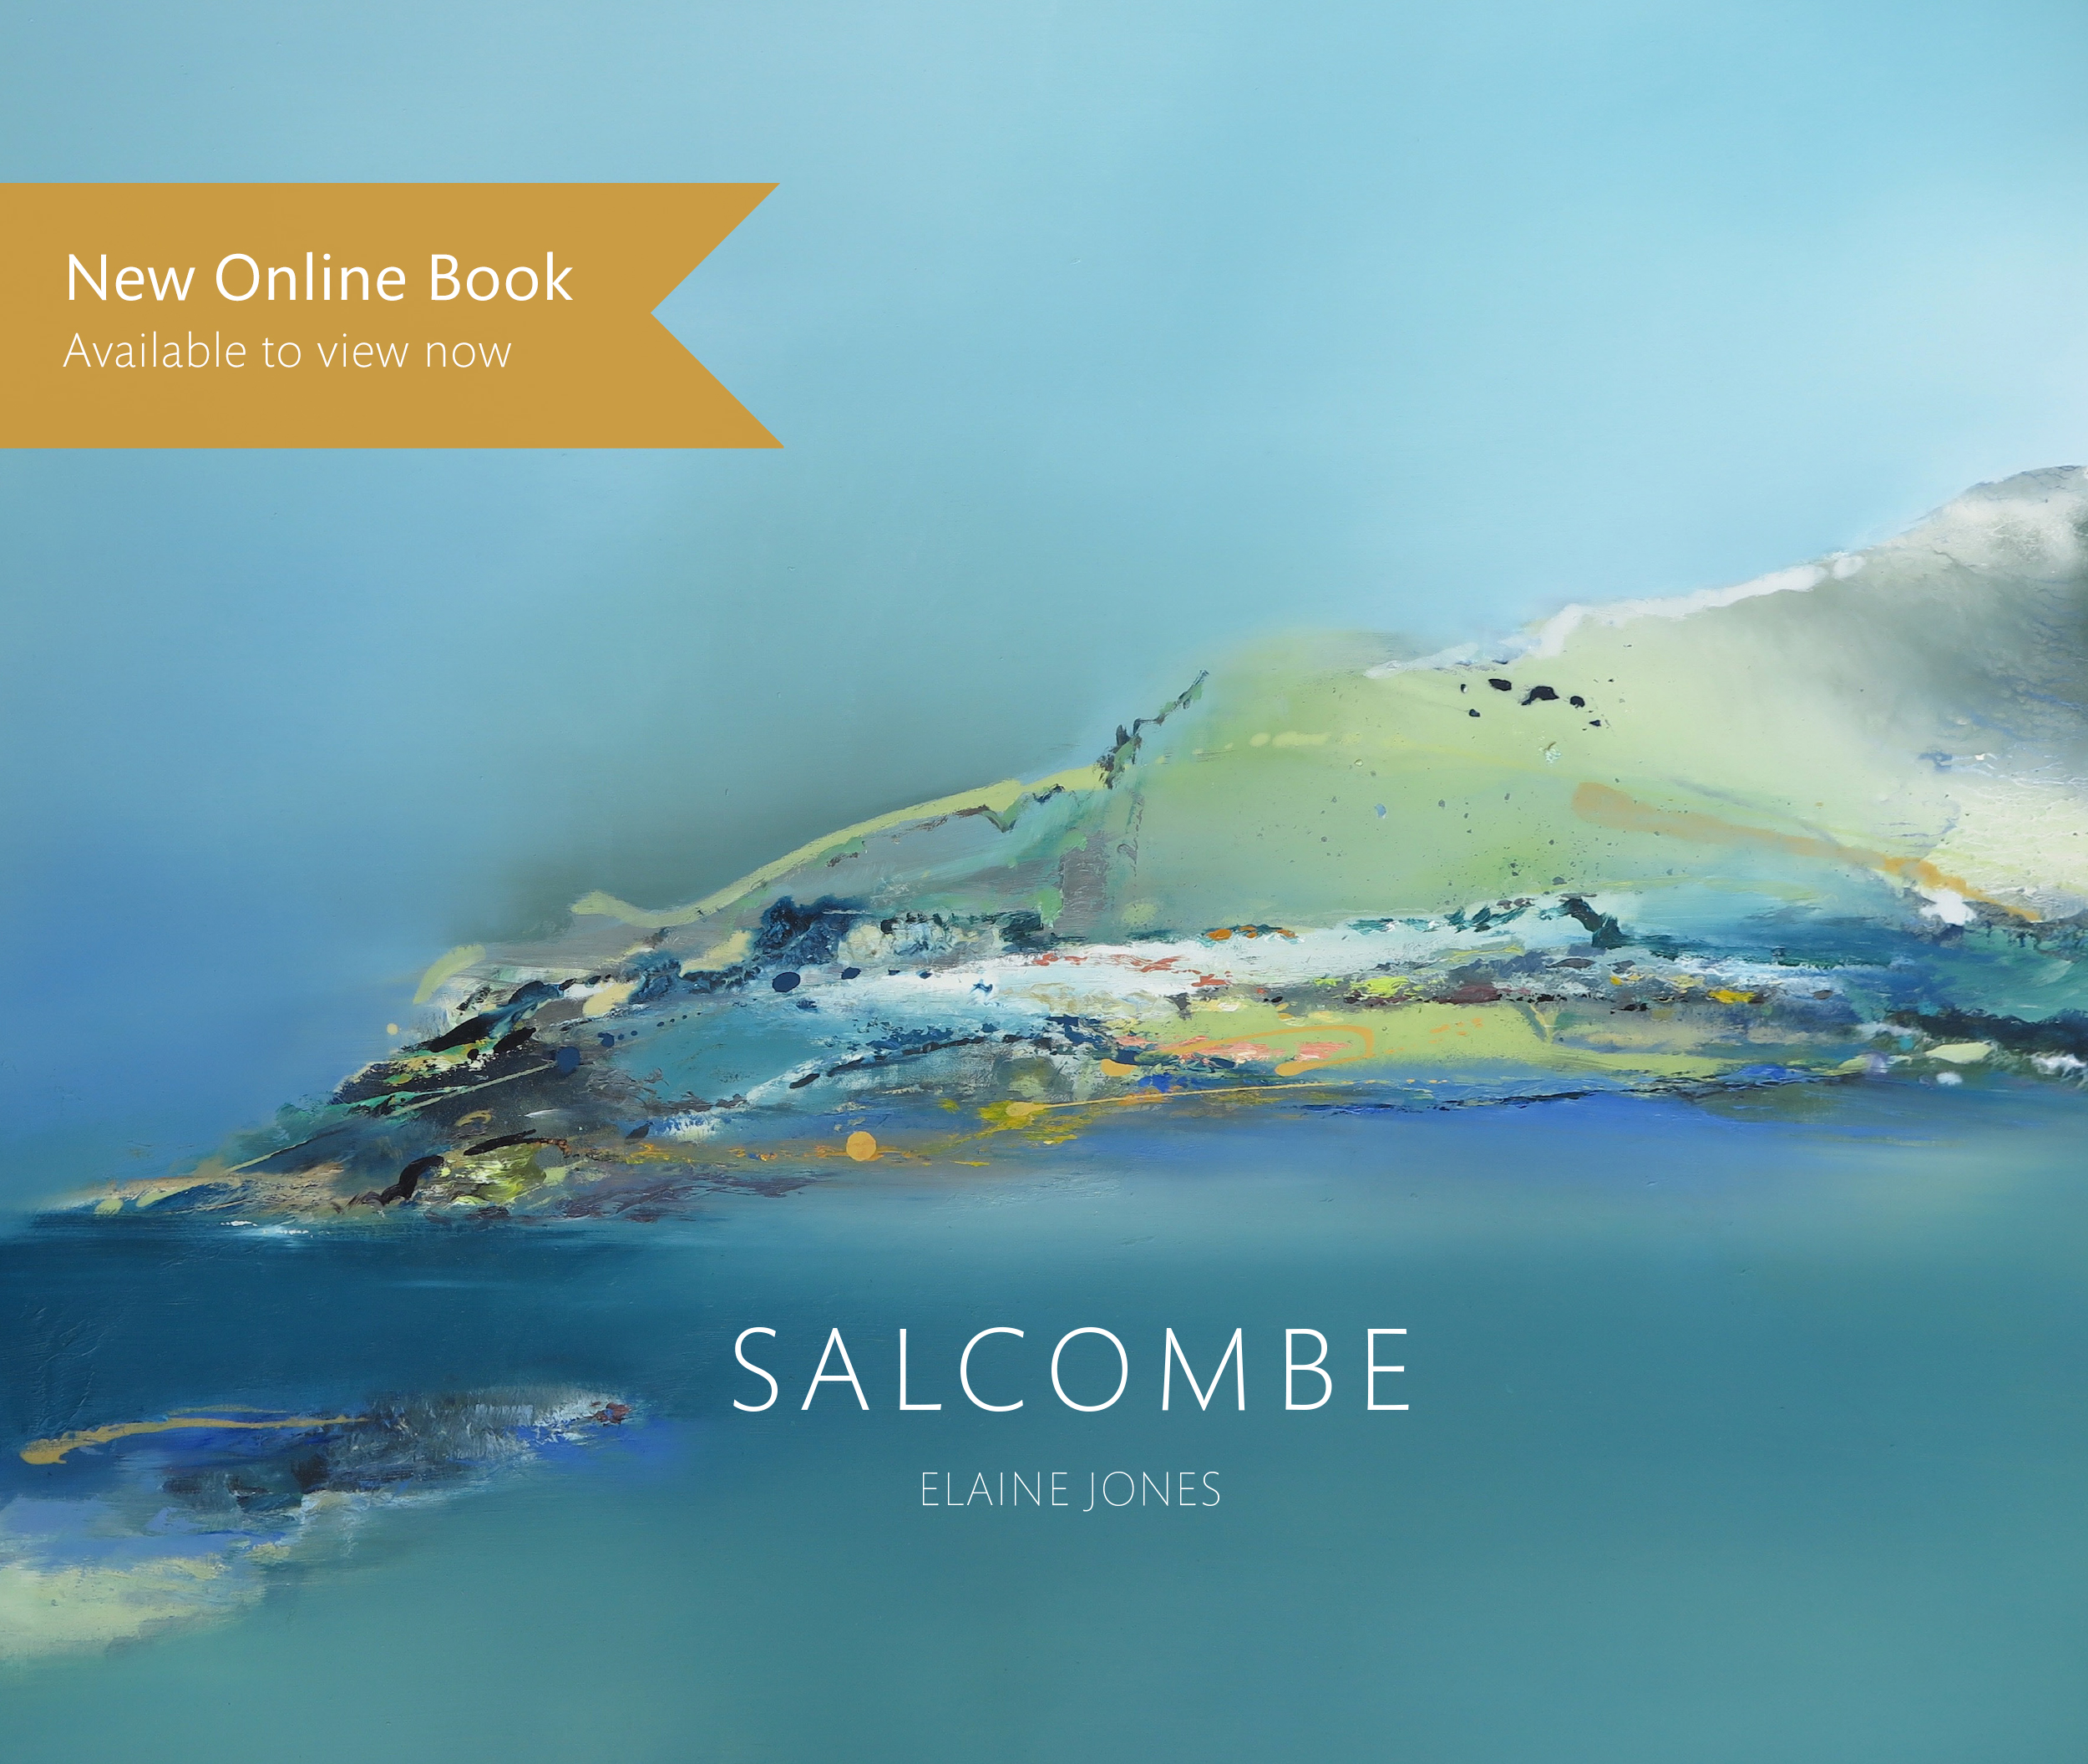 New Online Book - Salcombe, Elaine Jones